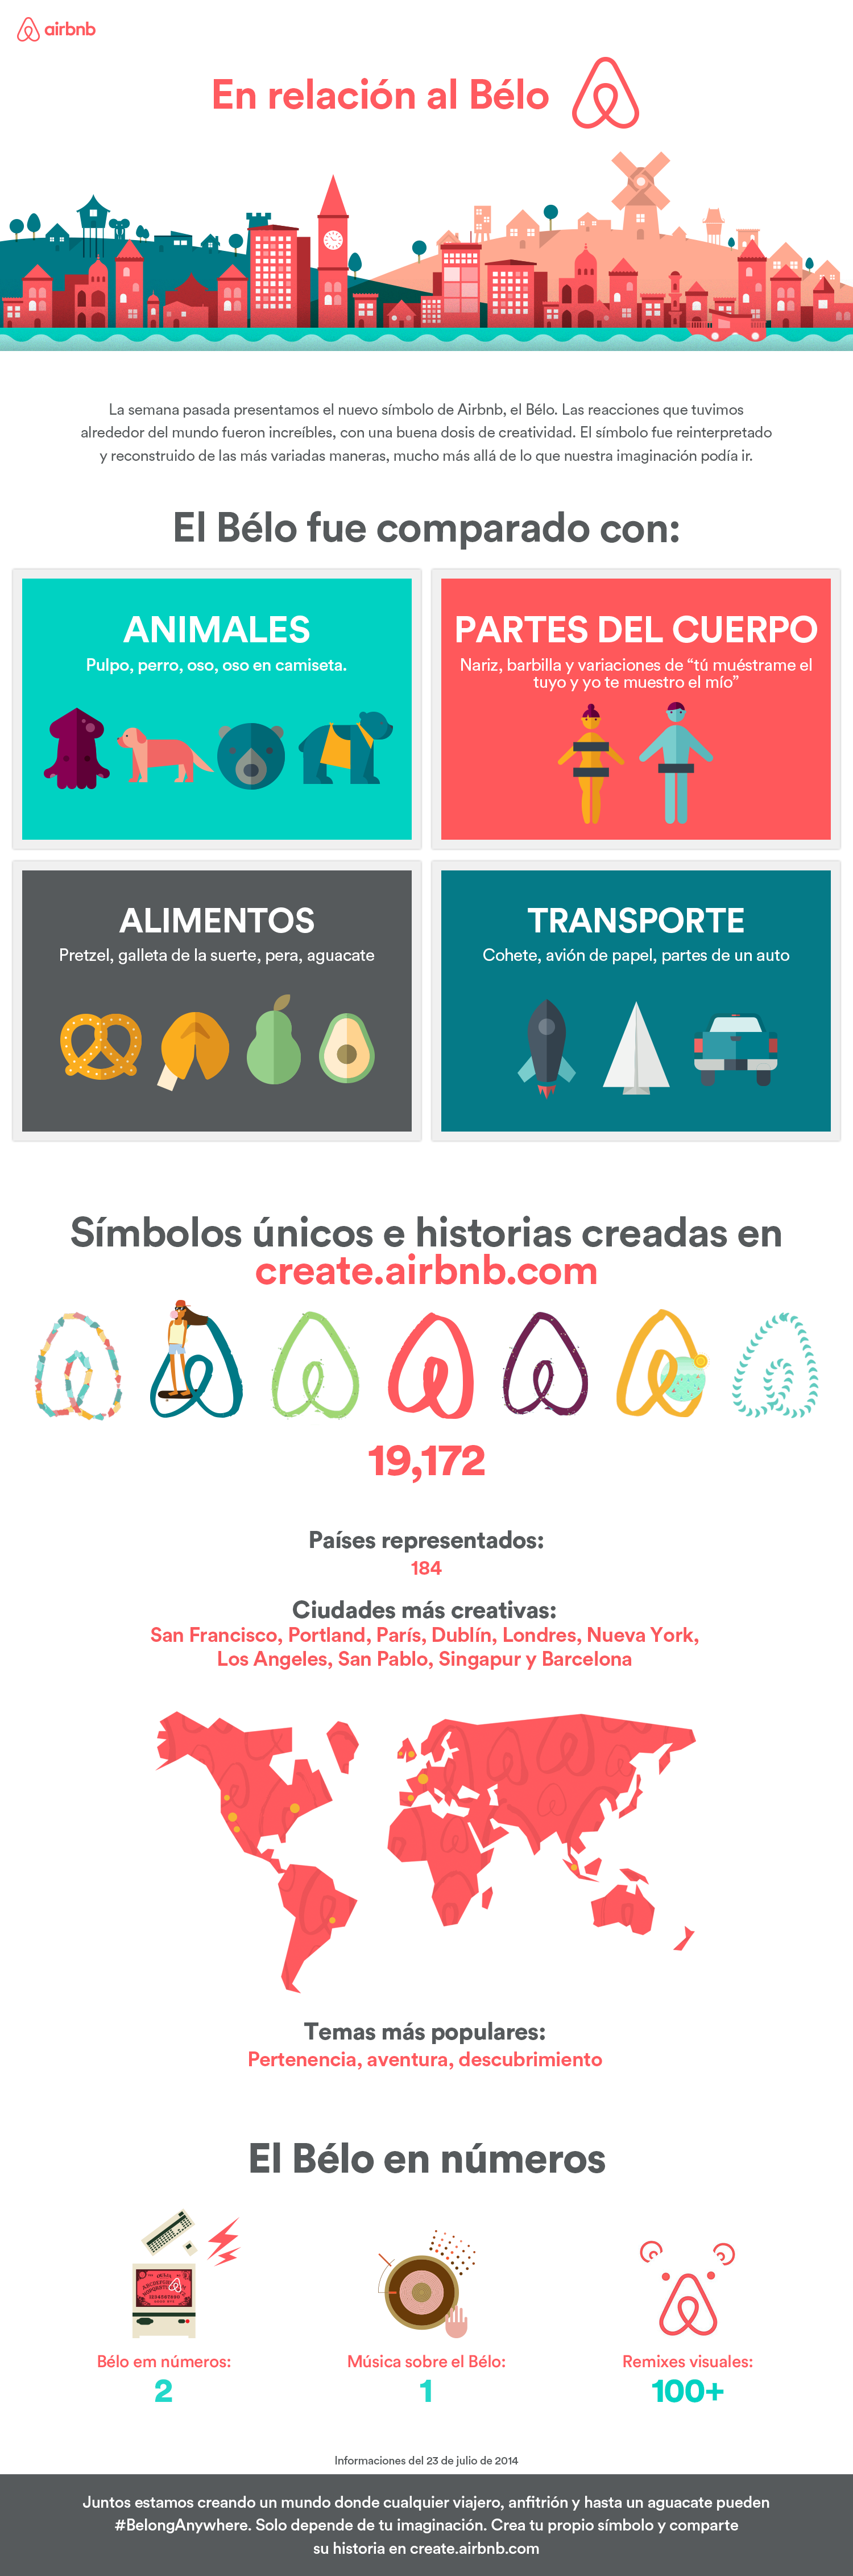 Airbnb_Belo_infographic_latam